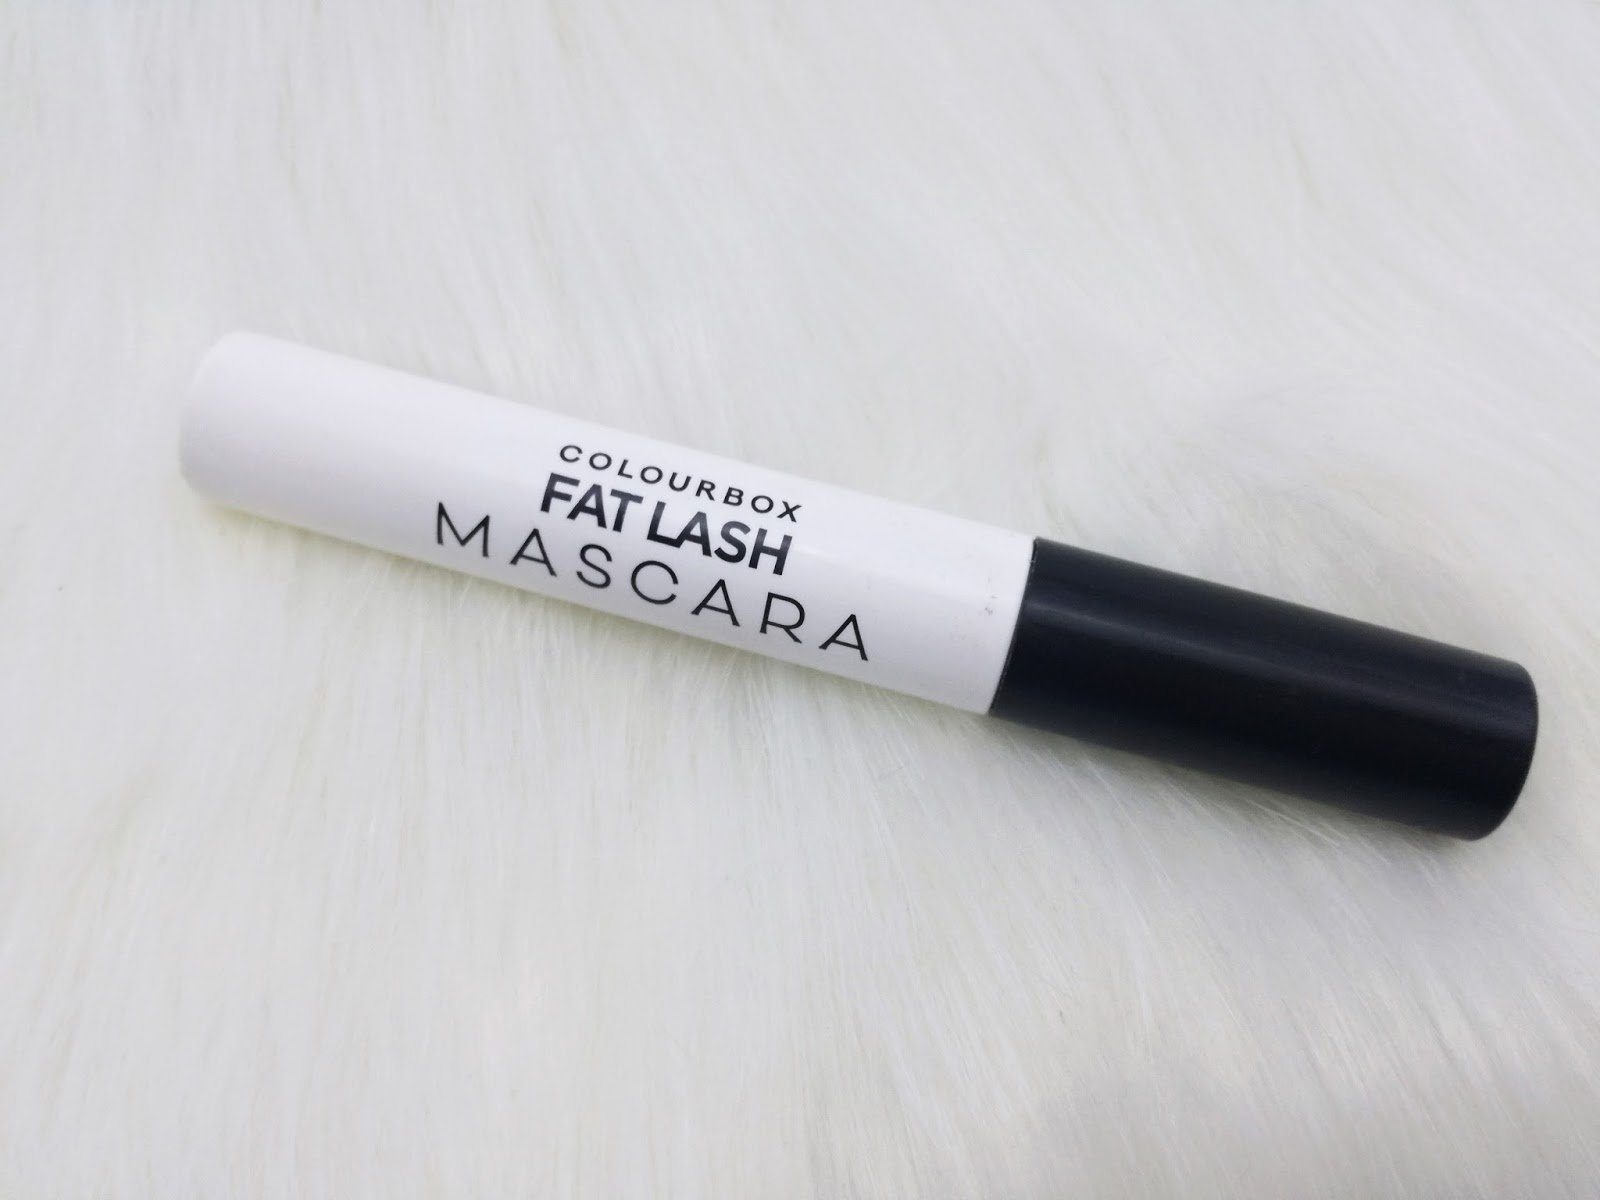 My favourite mascara: Oriflame ColourBox Fat Lash